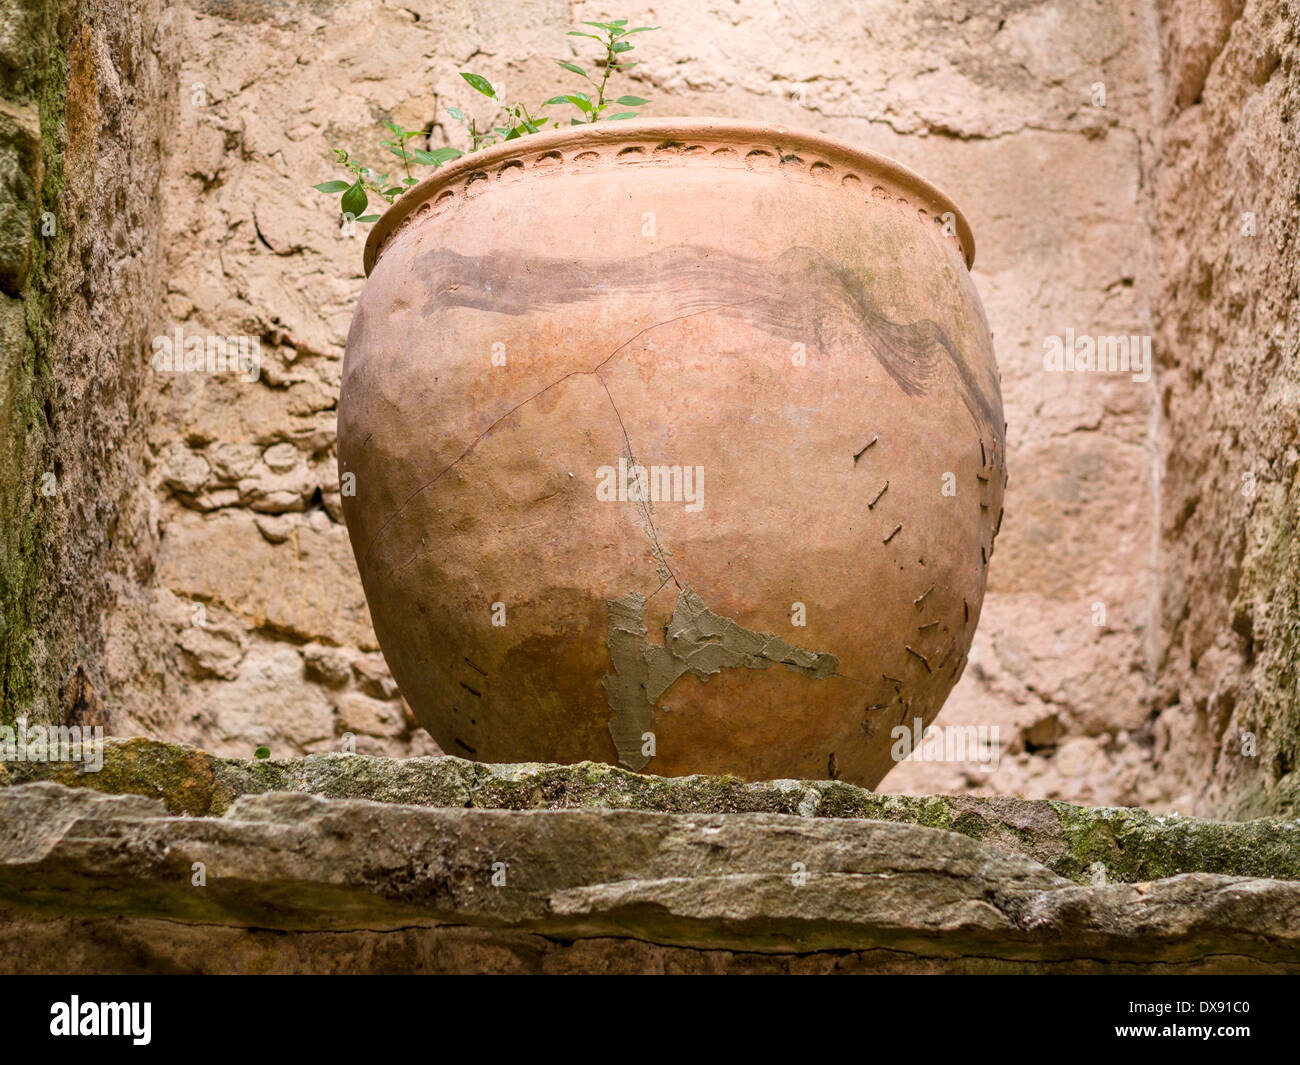 Cracked & Repaired terracotta Planter in Pals. A large planter patched and stapled to repair it stands in a rocky niche in Pals. - Stock Image